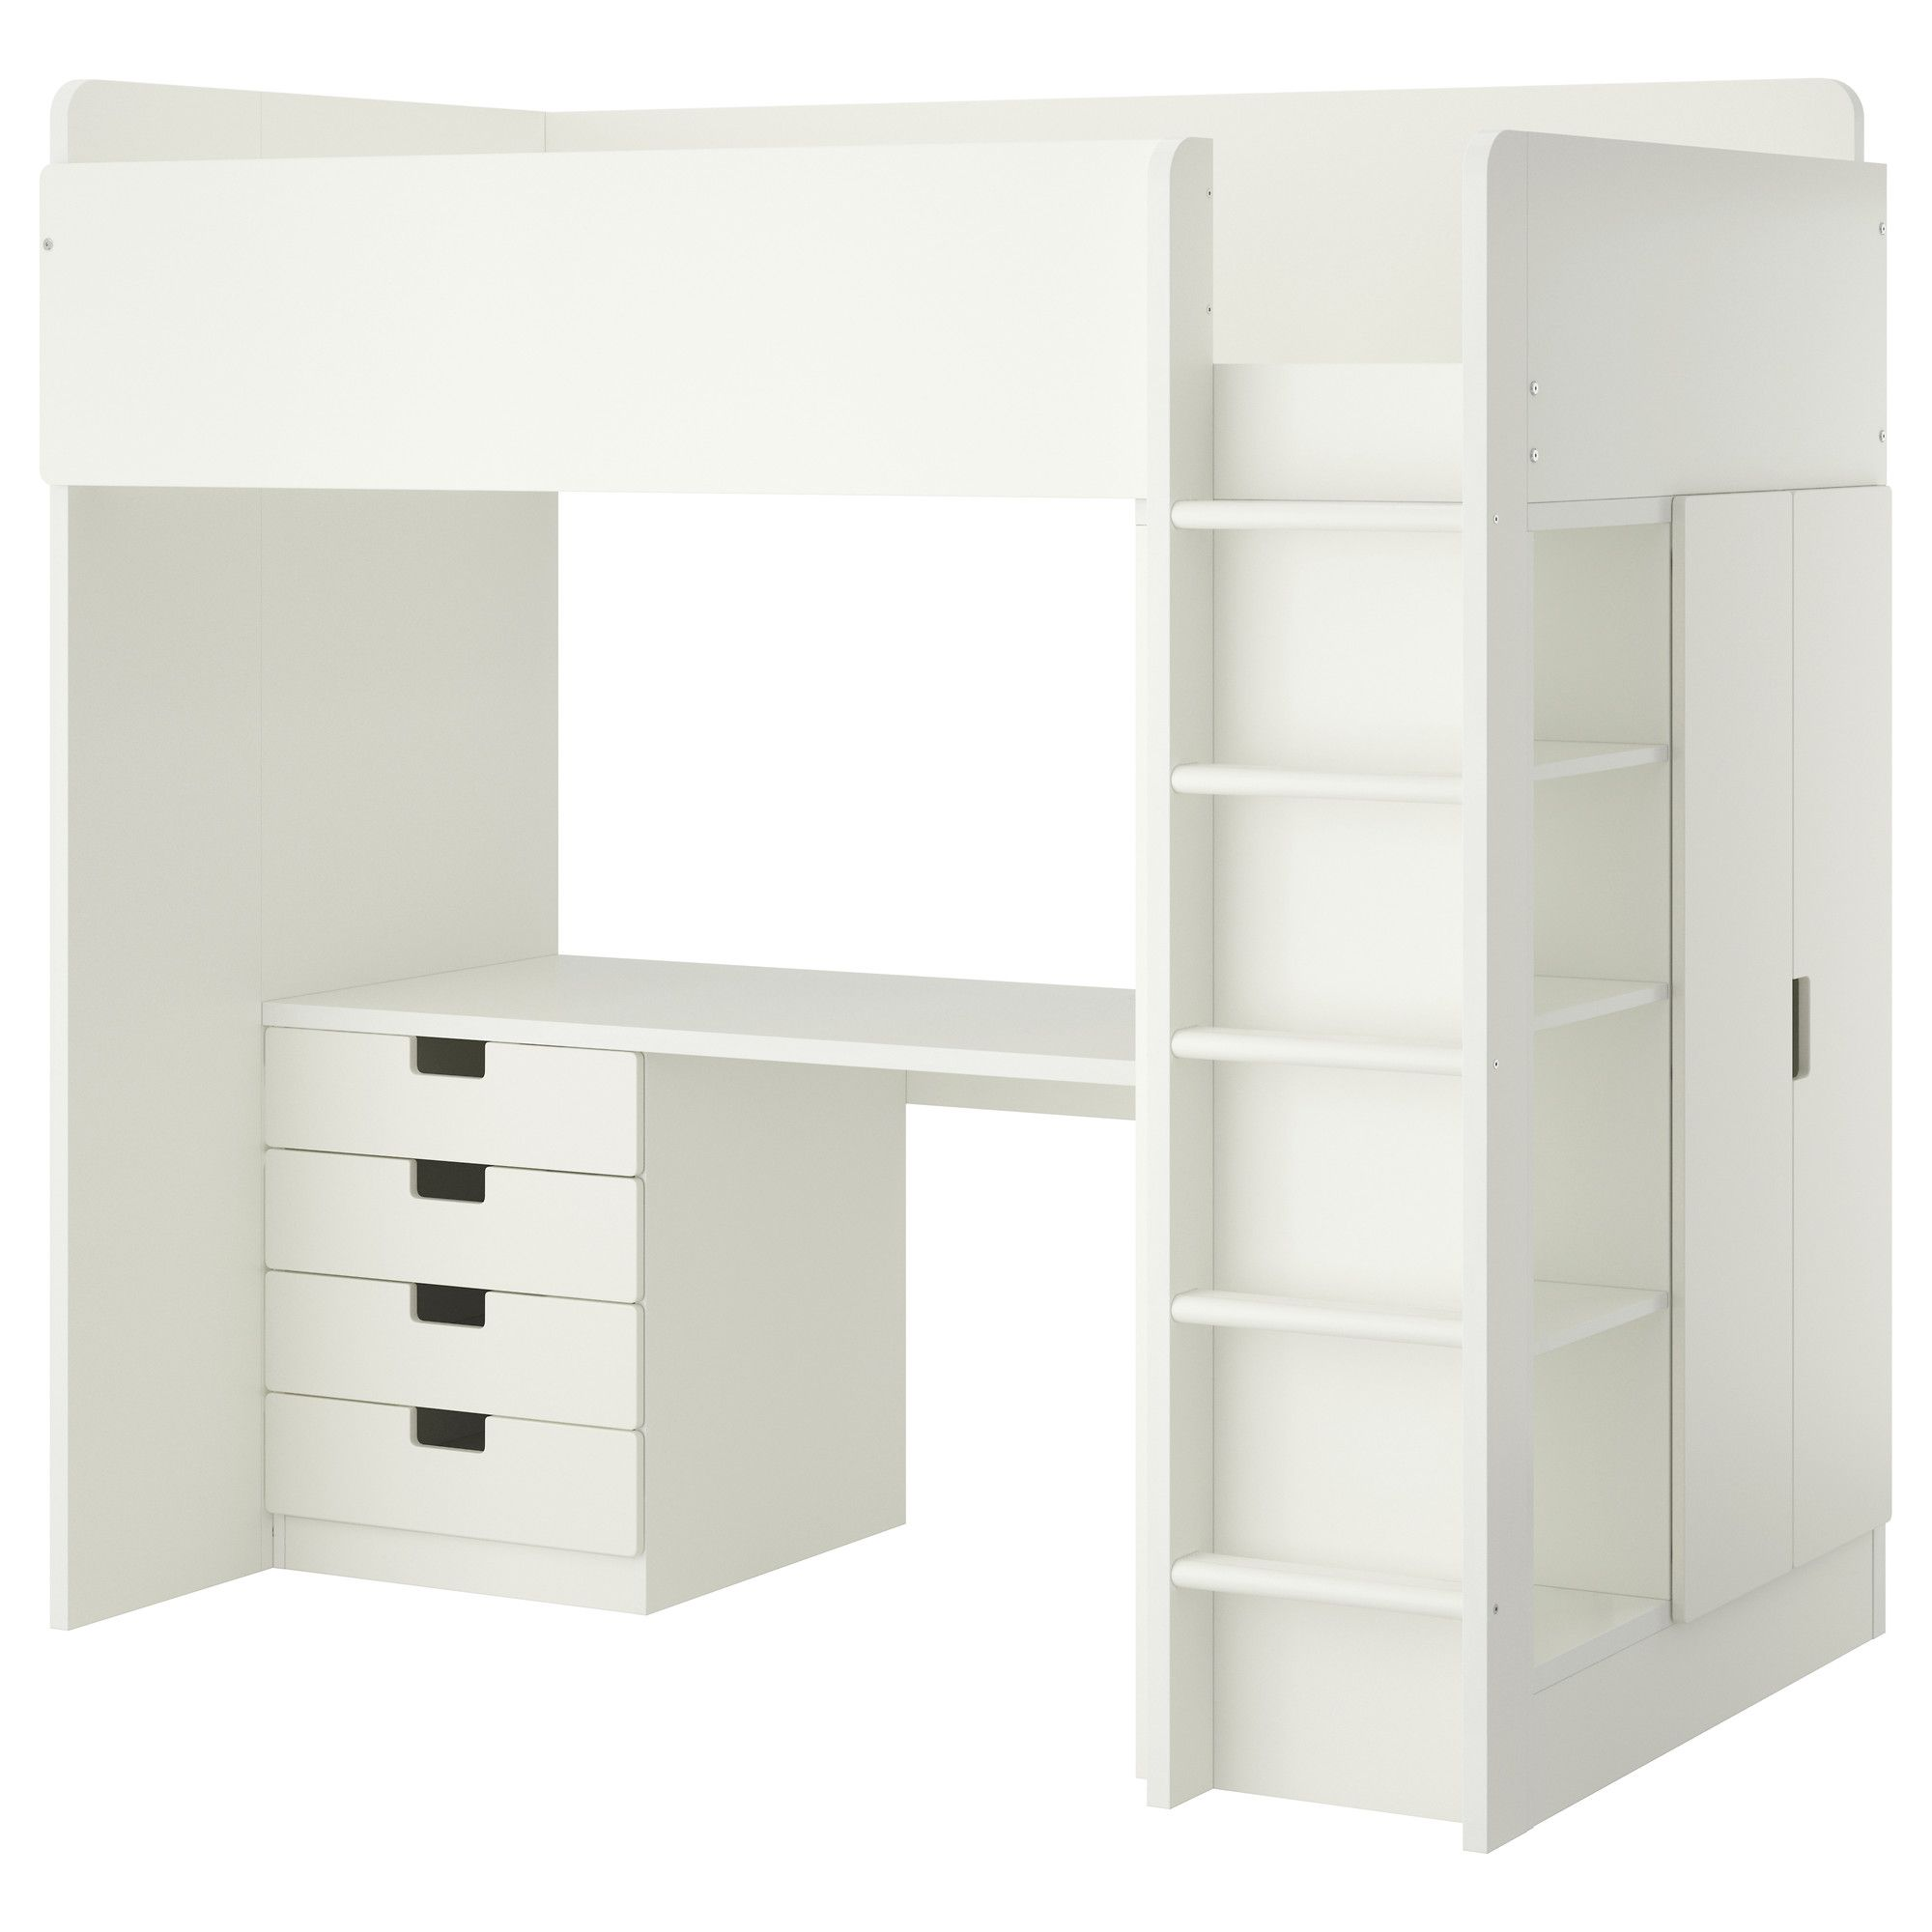 Ikea Kinderzimmer Stuva Planer Us Furniture And Home Furnishings Alyssa S Room Stuva